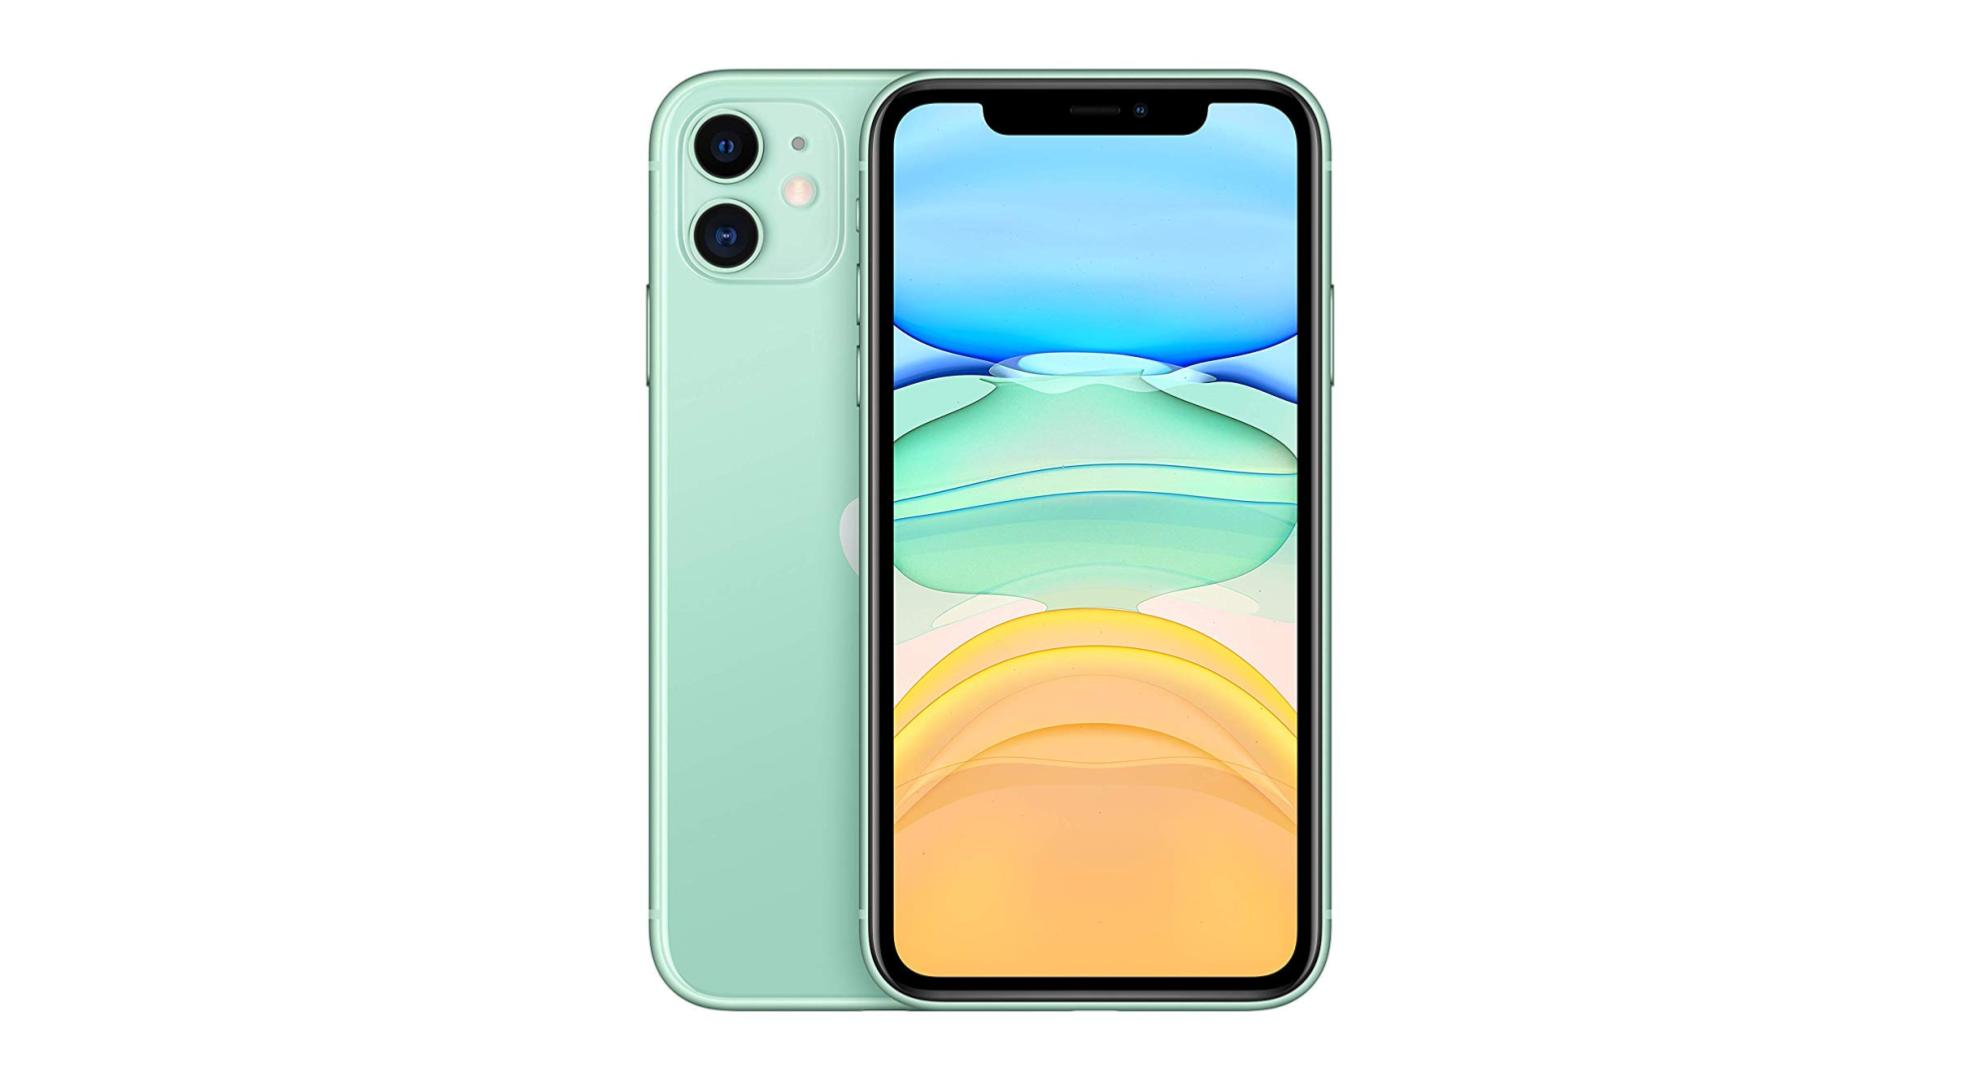 Orange Tunisie commercialise L'iPhone 11 dès le 22 Novembre 2019